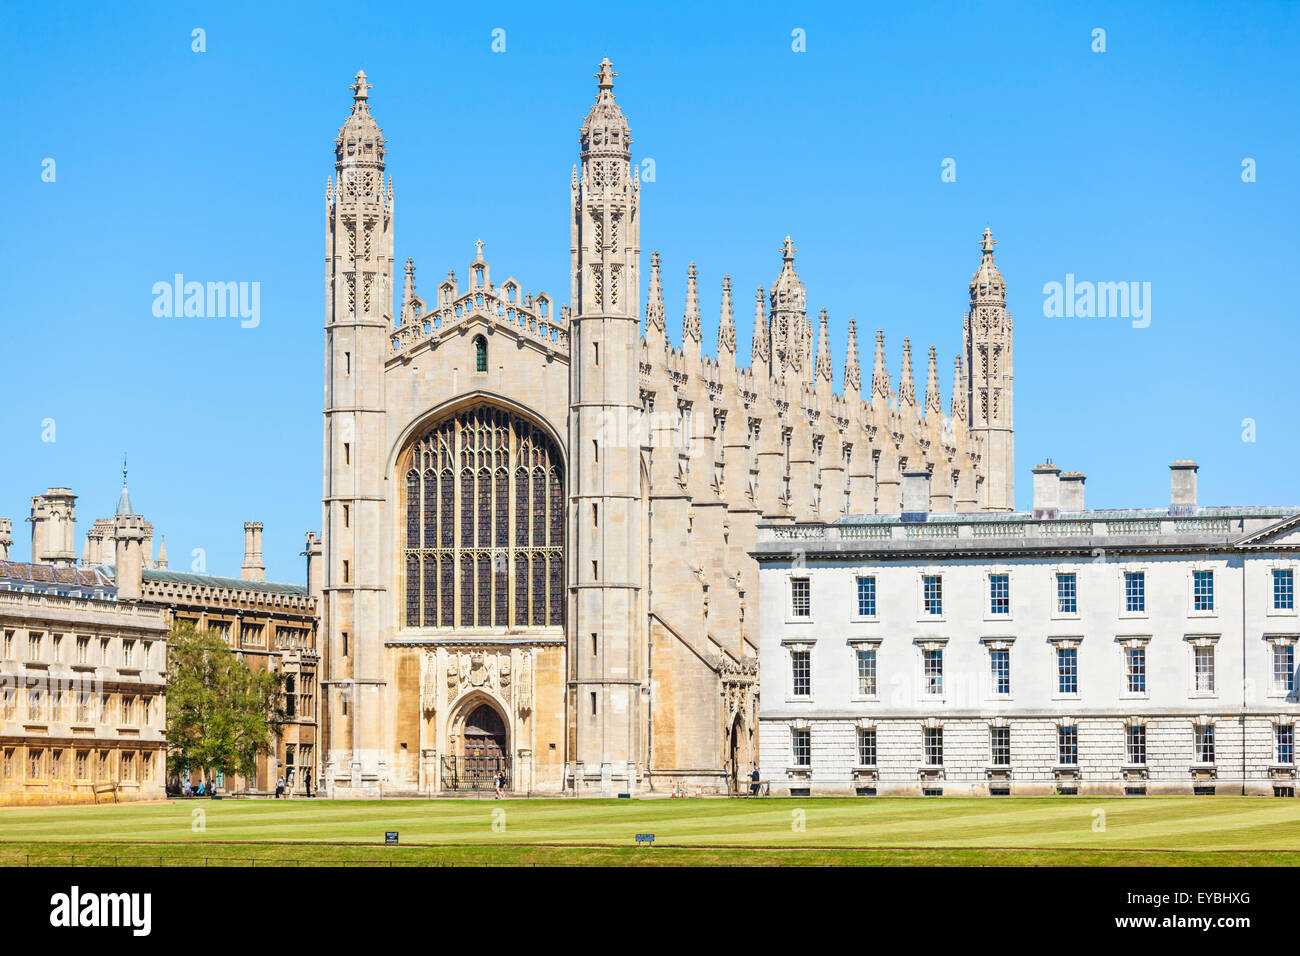 Kings College Chapel from the Backs Cambridge University Cambridgeshire England UK GB Europe - Stock Image